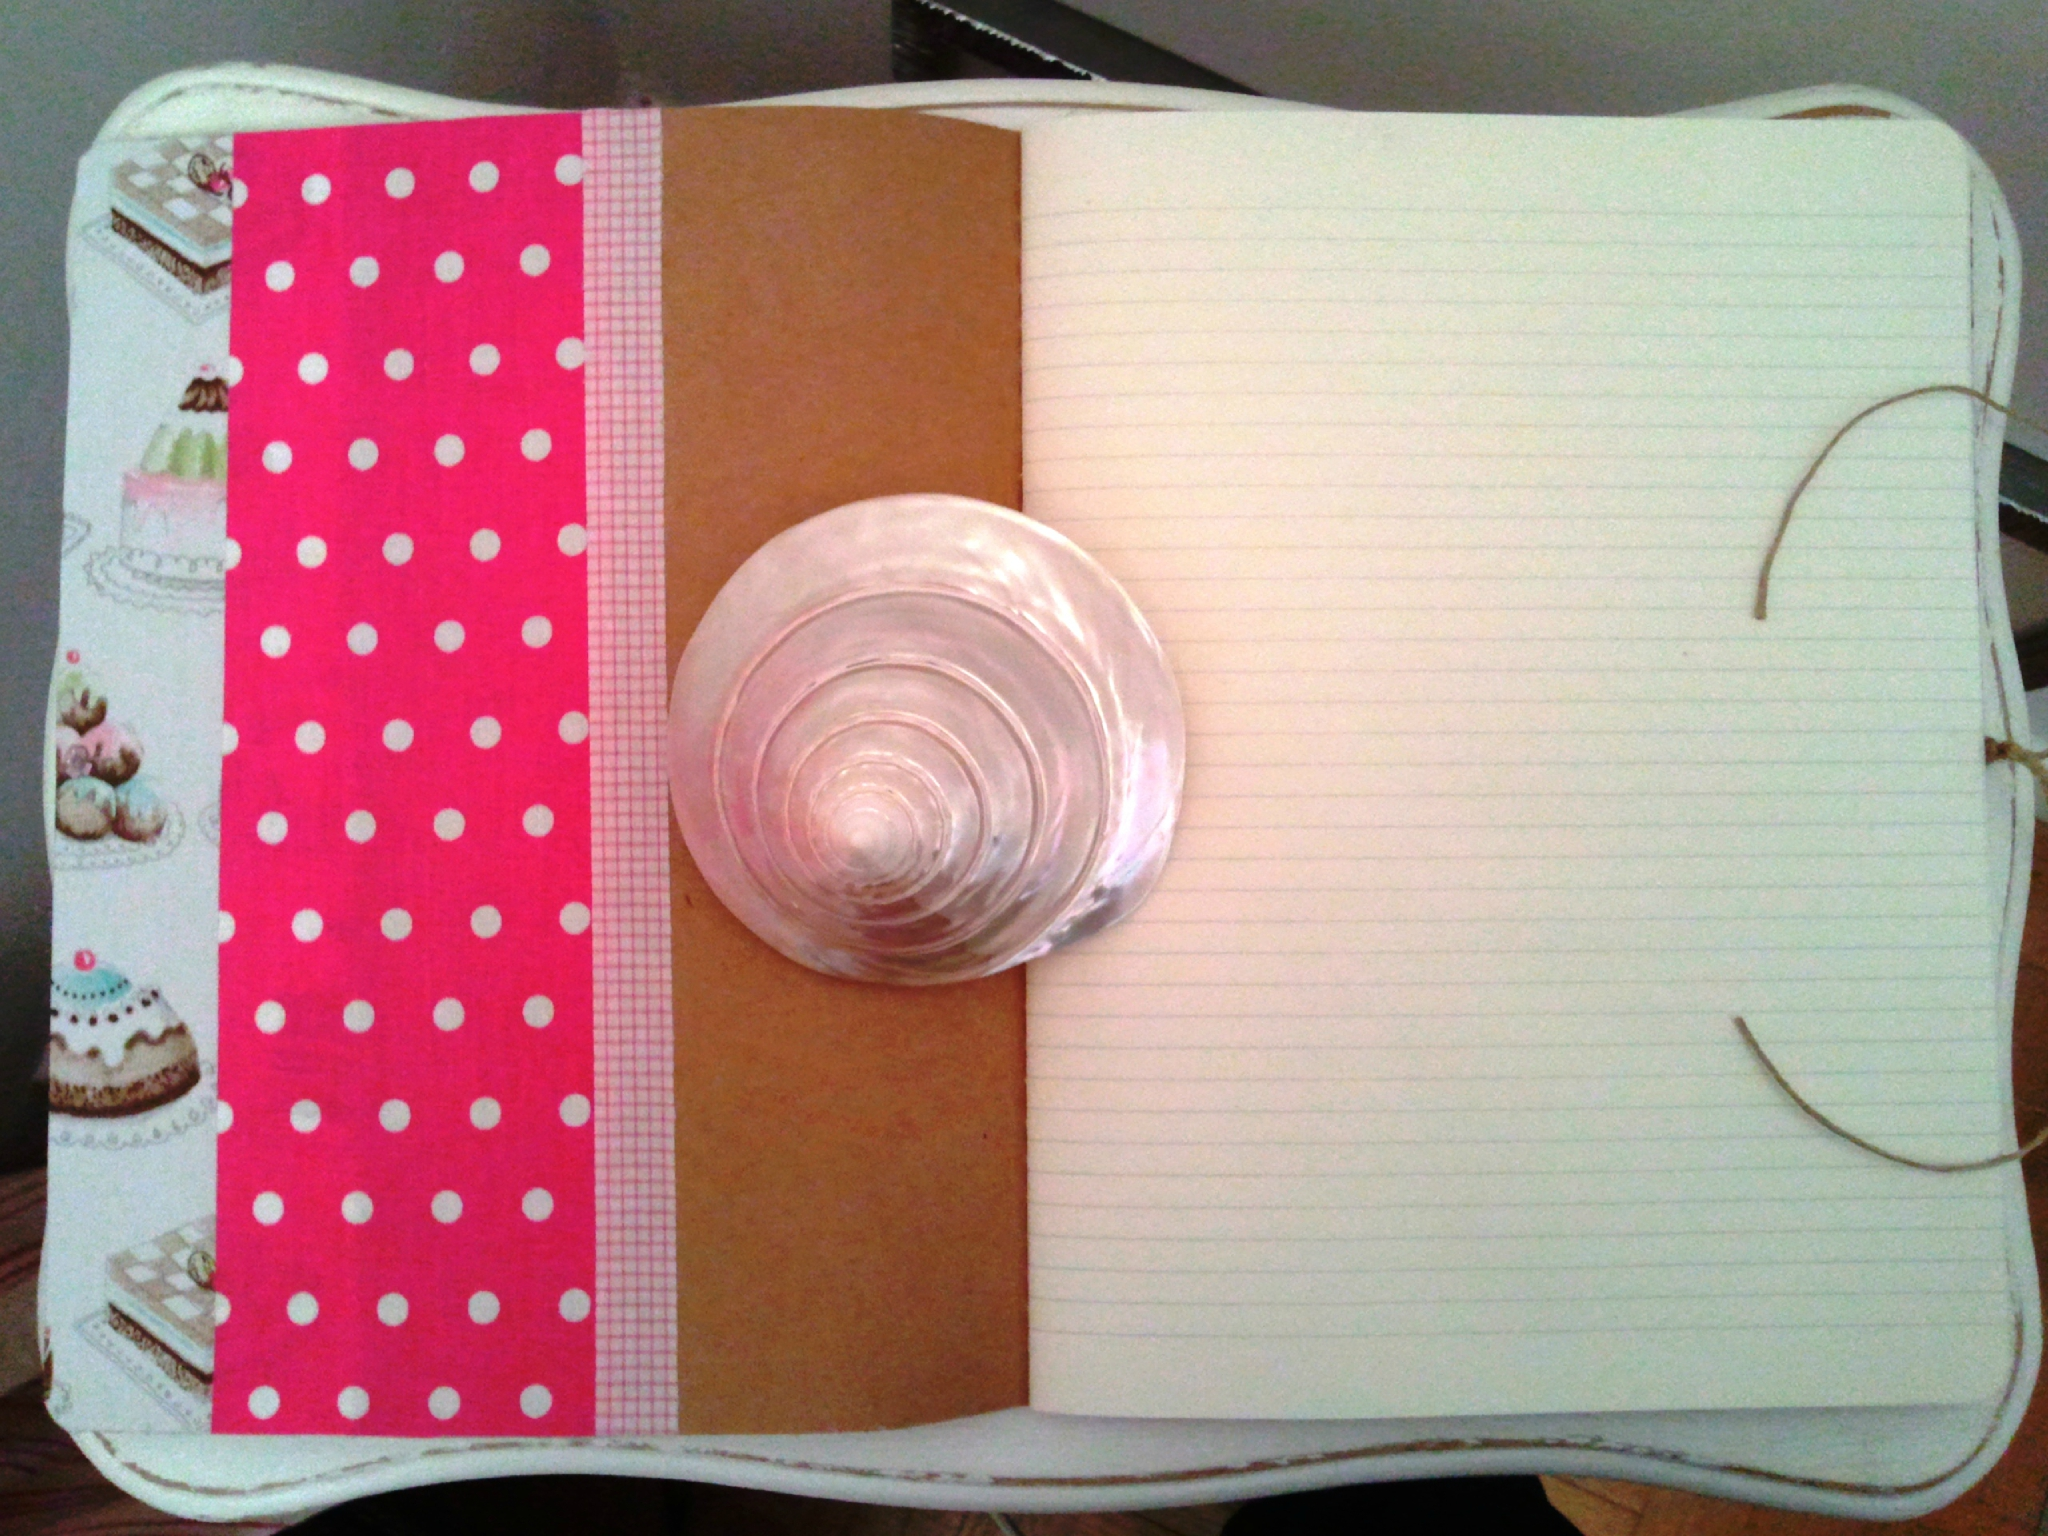 Cahier Gourmand gateaux pois roses